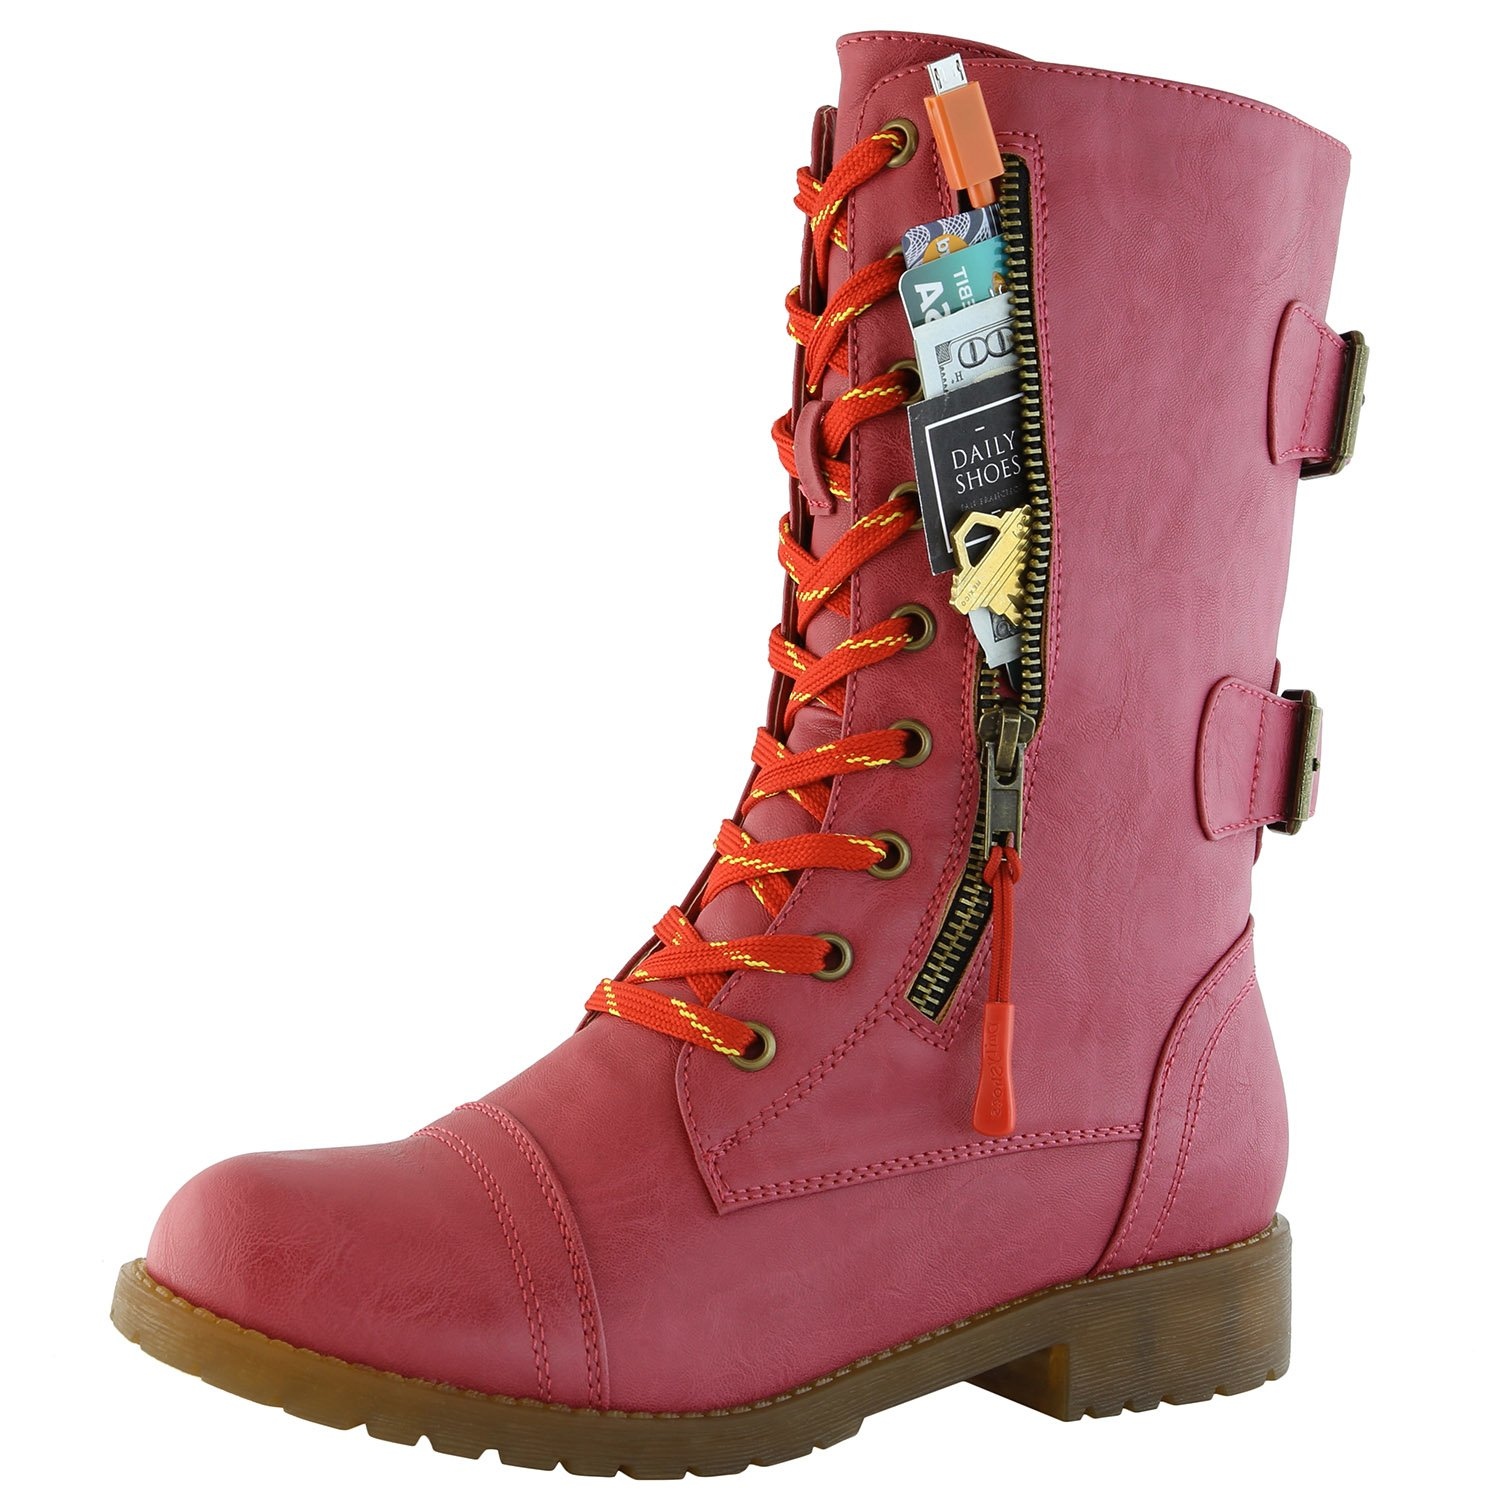 DailyShoes Women's Military Combat Ankle Boots Lace up Buckle Mid Knee High Exclusive Credit Card Pocket Bootie, Premium Hot Pink Pu, 5.5 B(M) US